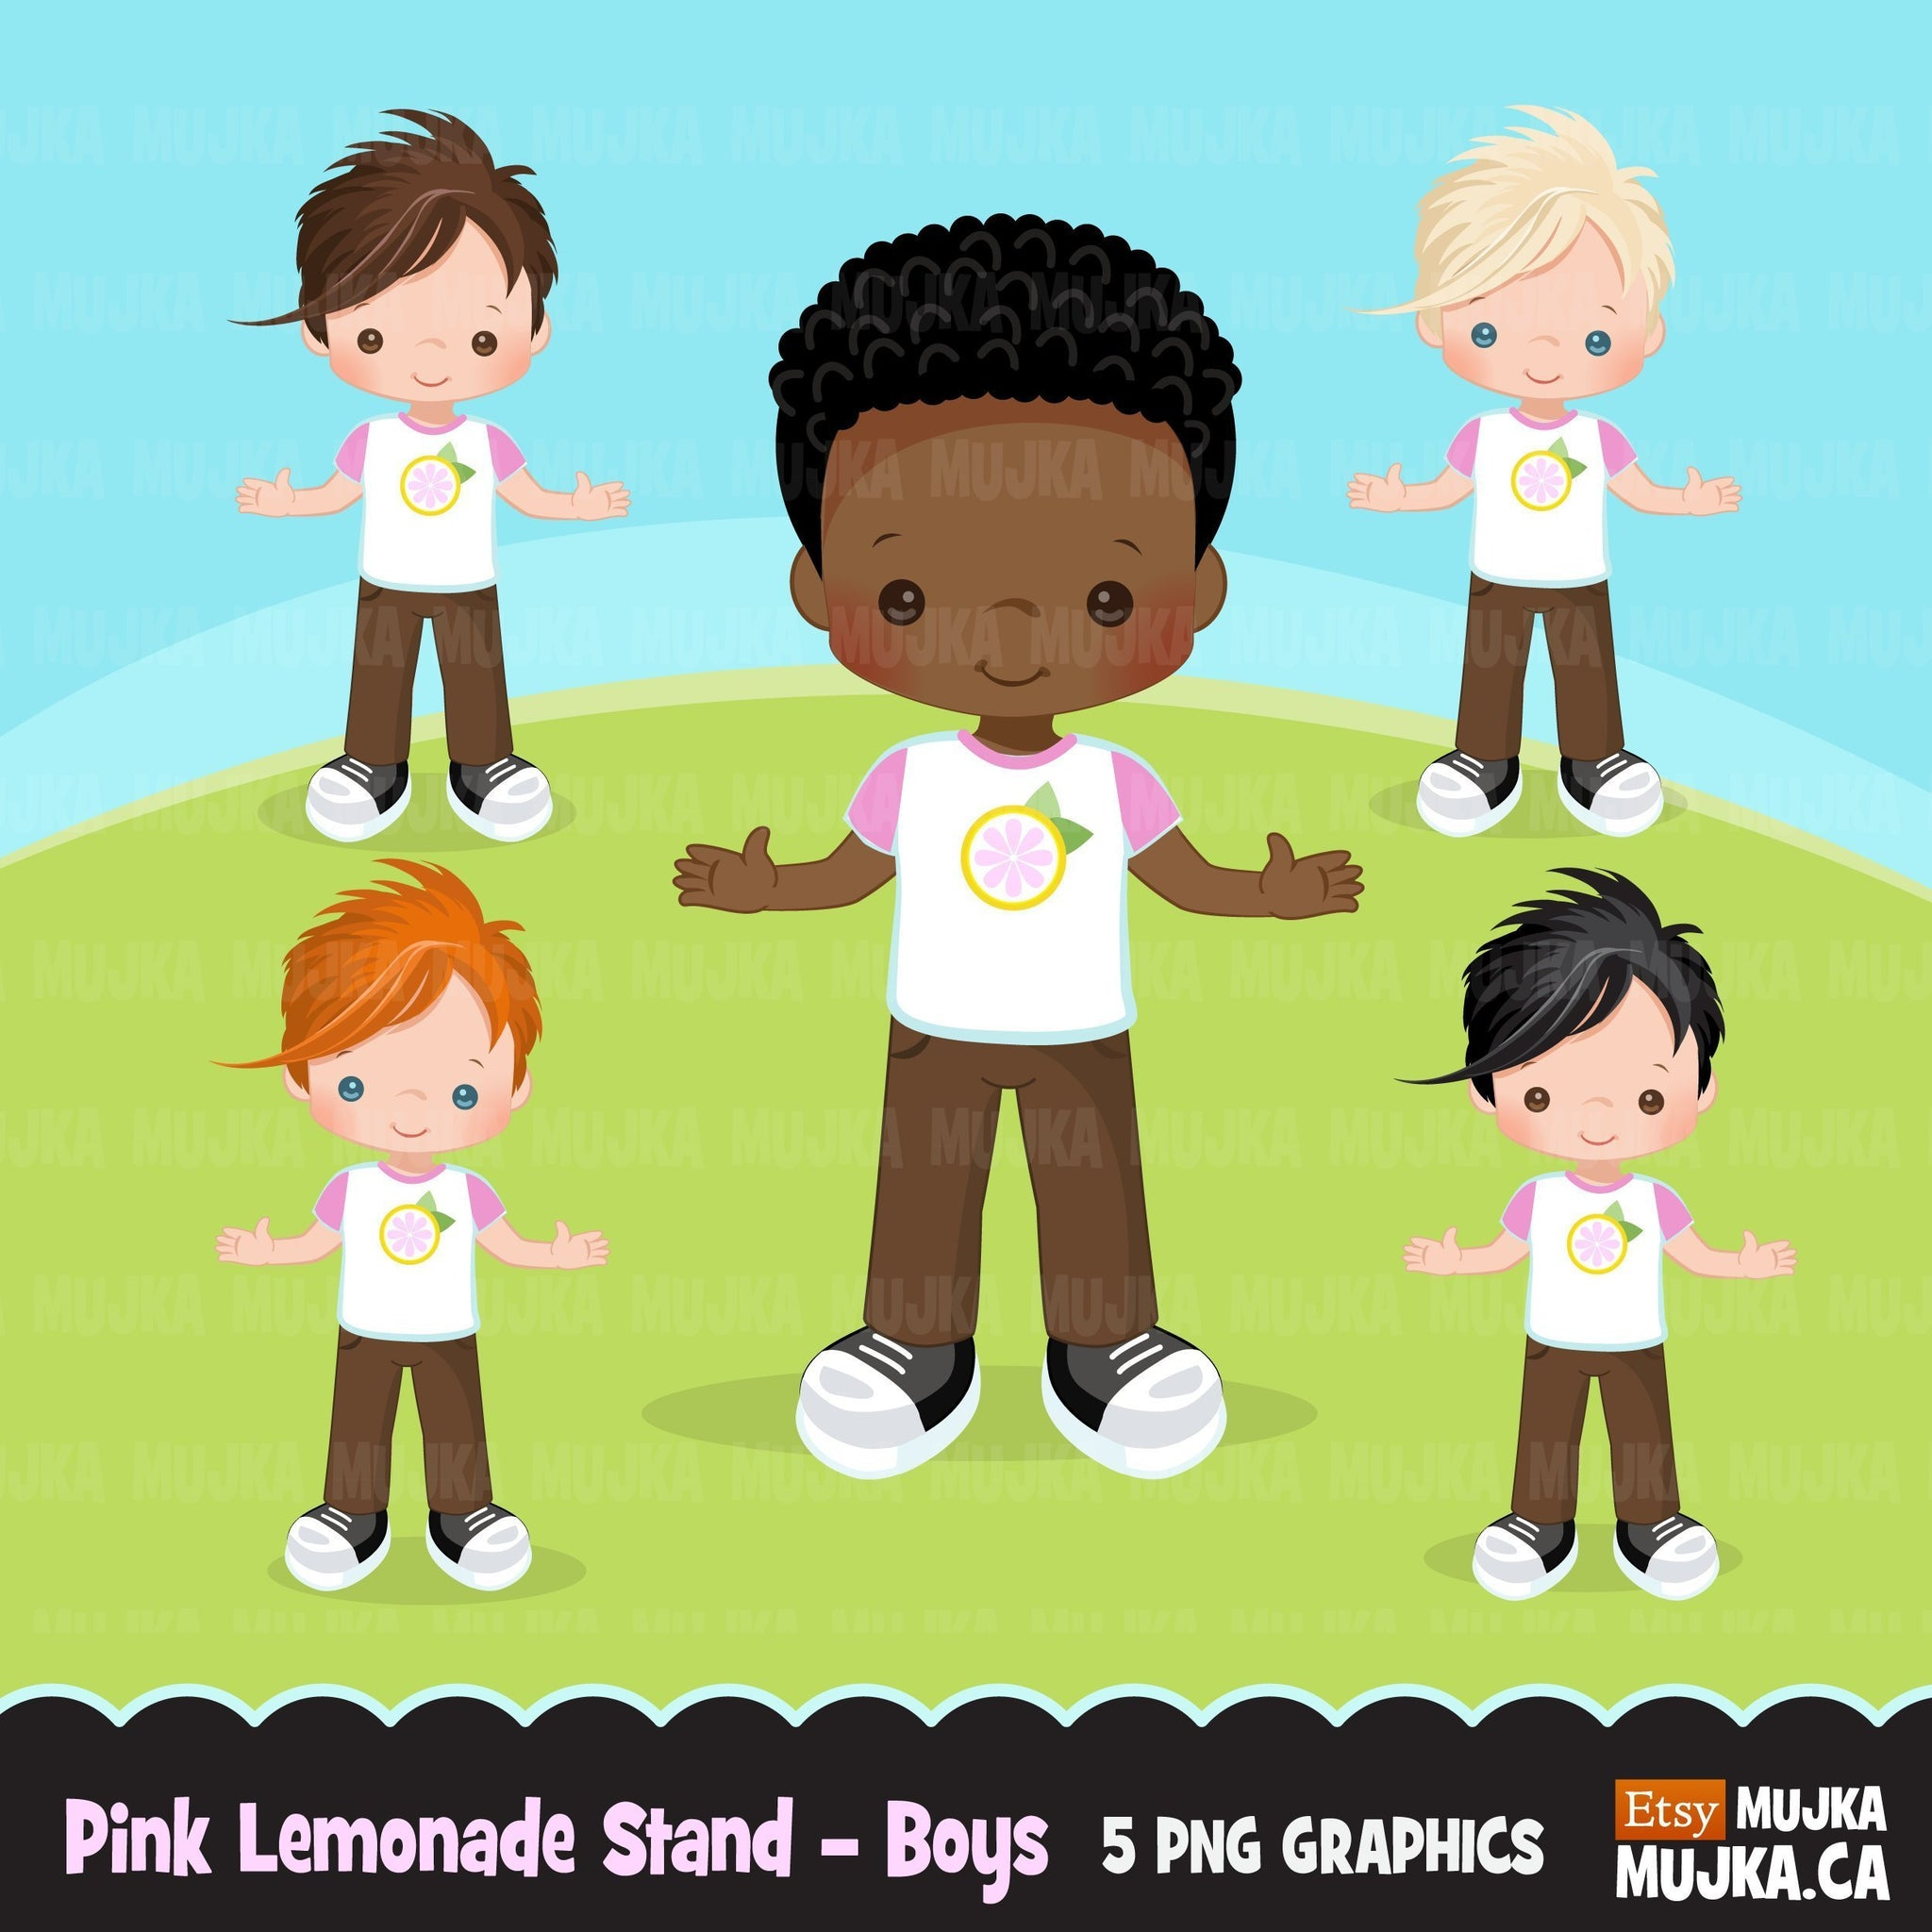 Pink Lemonade Stand Boys clipart, summer